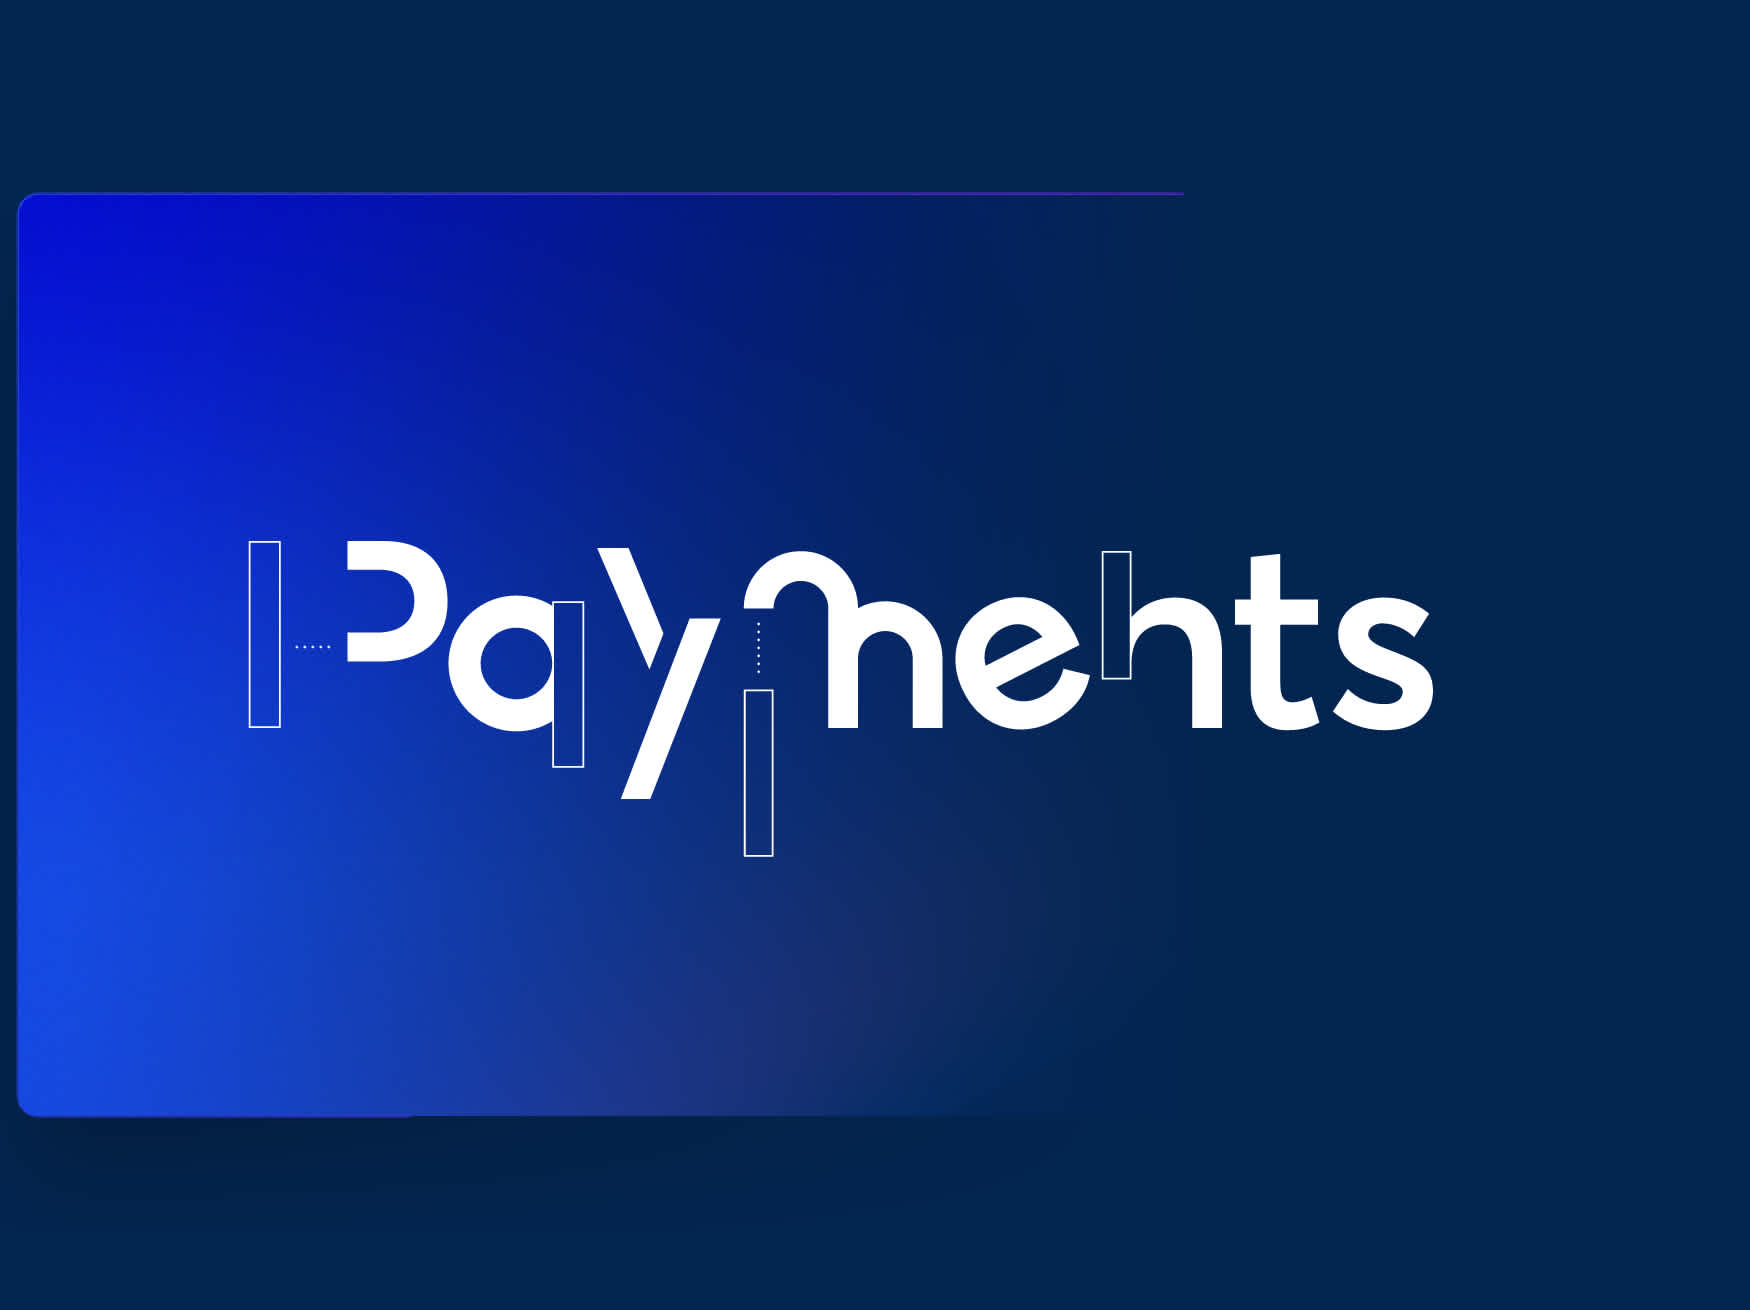 Get your payments in order